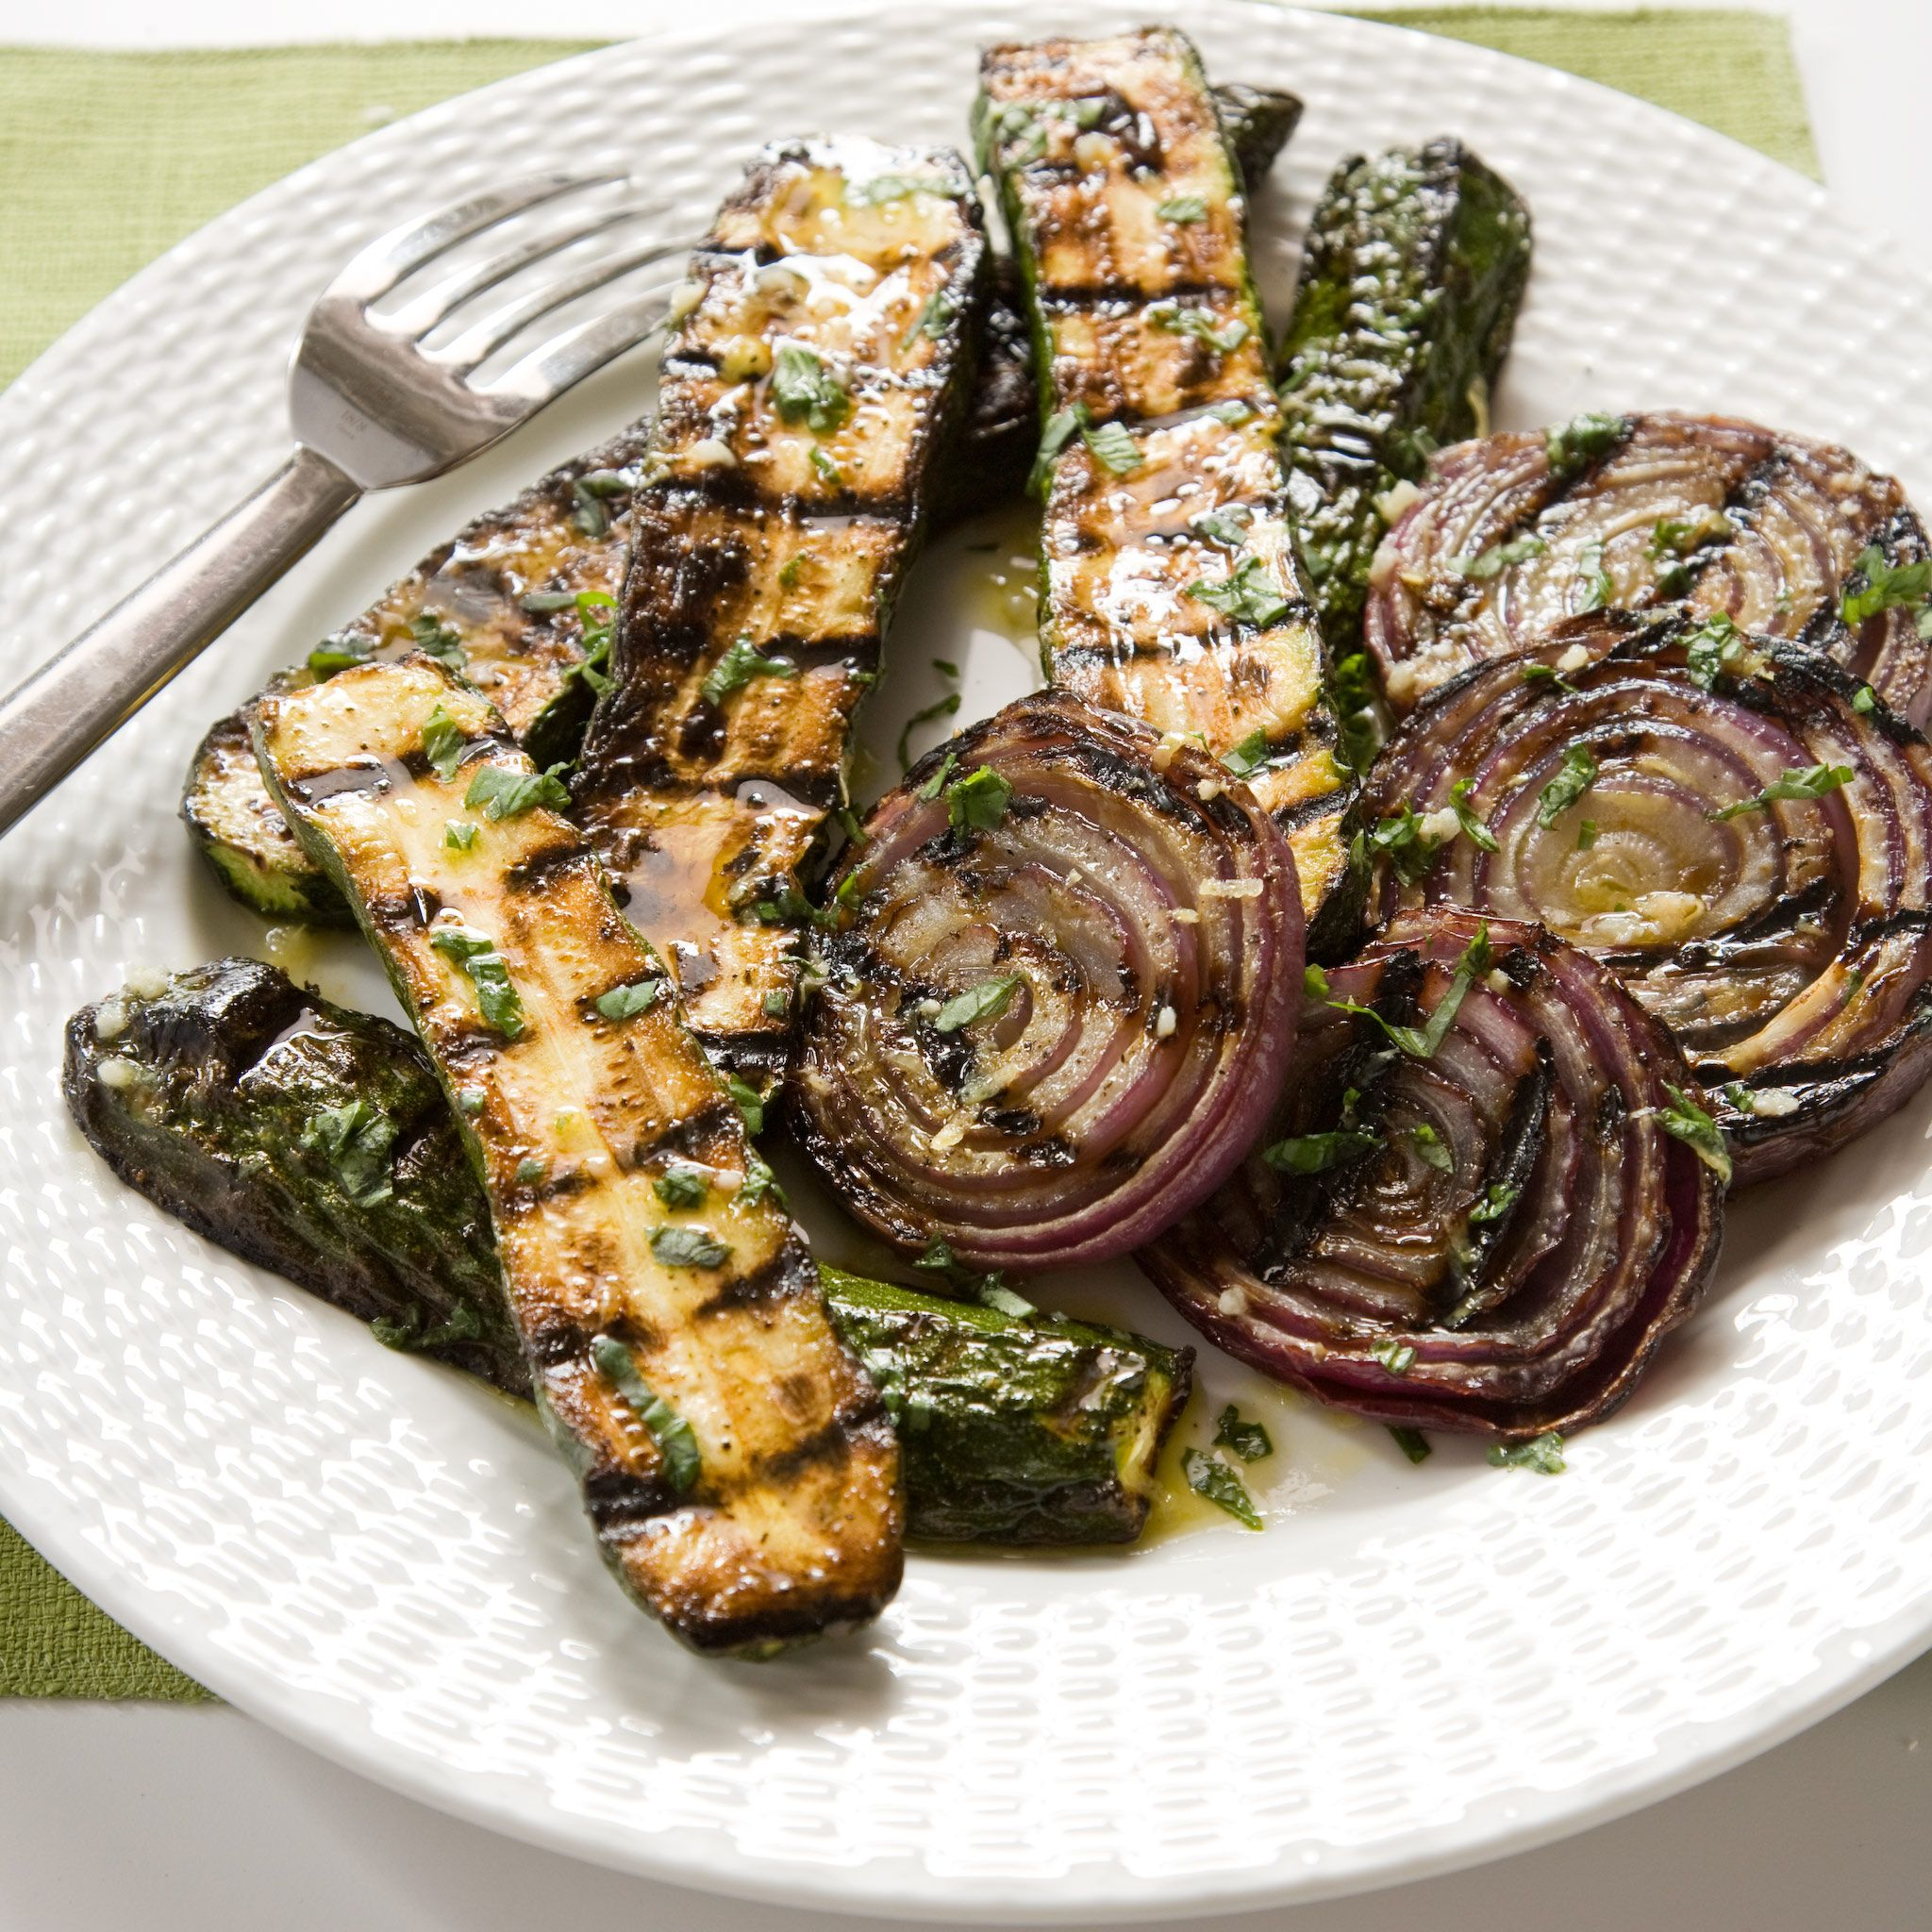 Most grilled veggies turn out one of two ways: pale and crunchy or ...